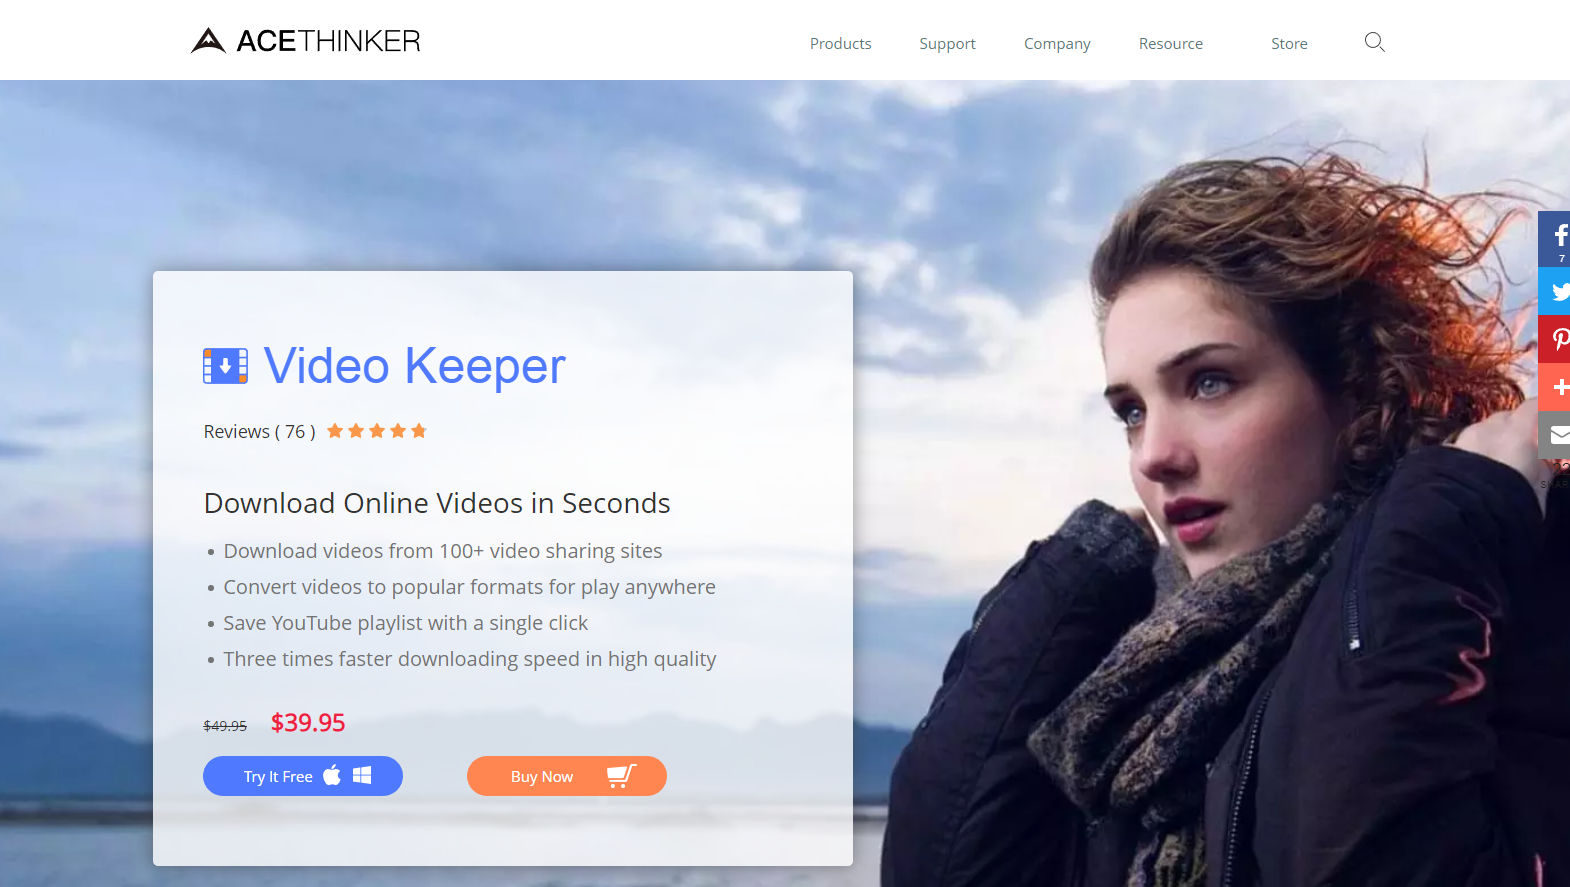 Download videos from 100+ video sharing sites using Video Keeper by Ace Thinker.